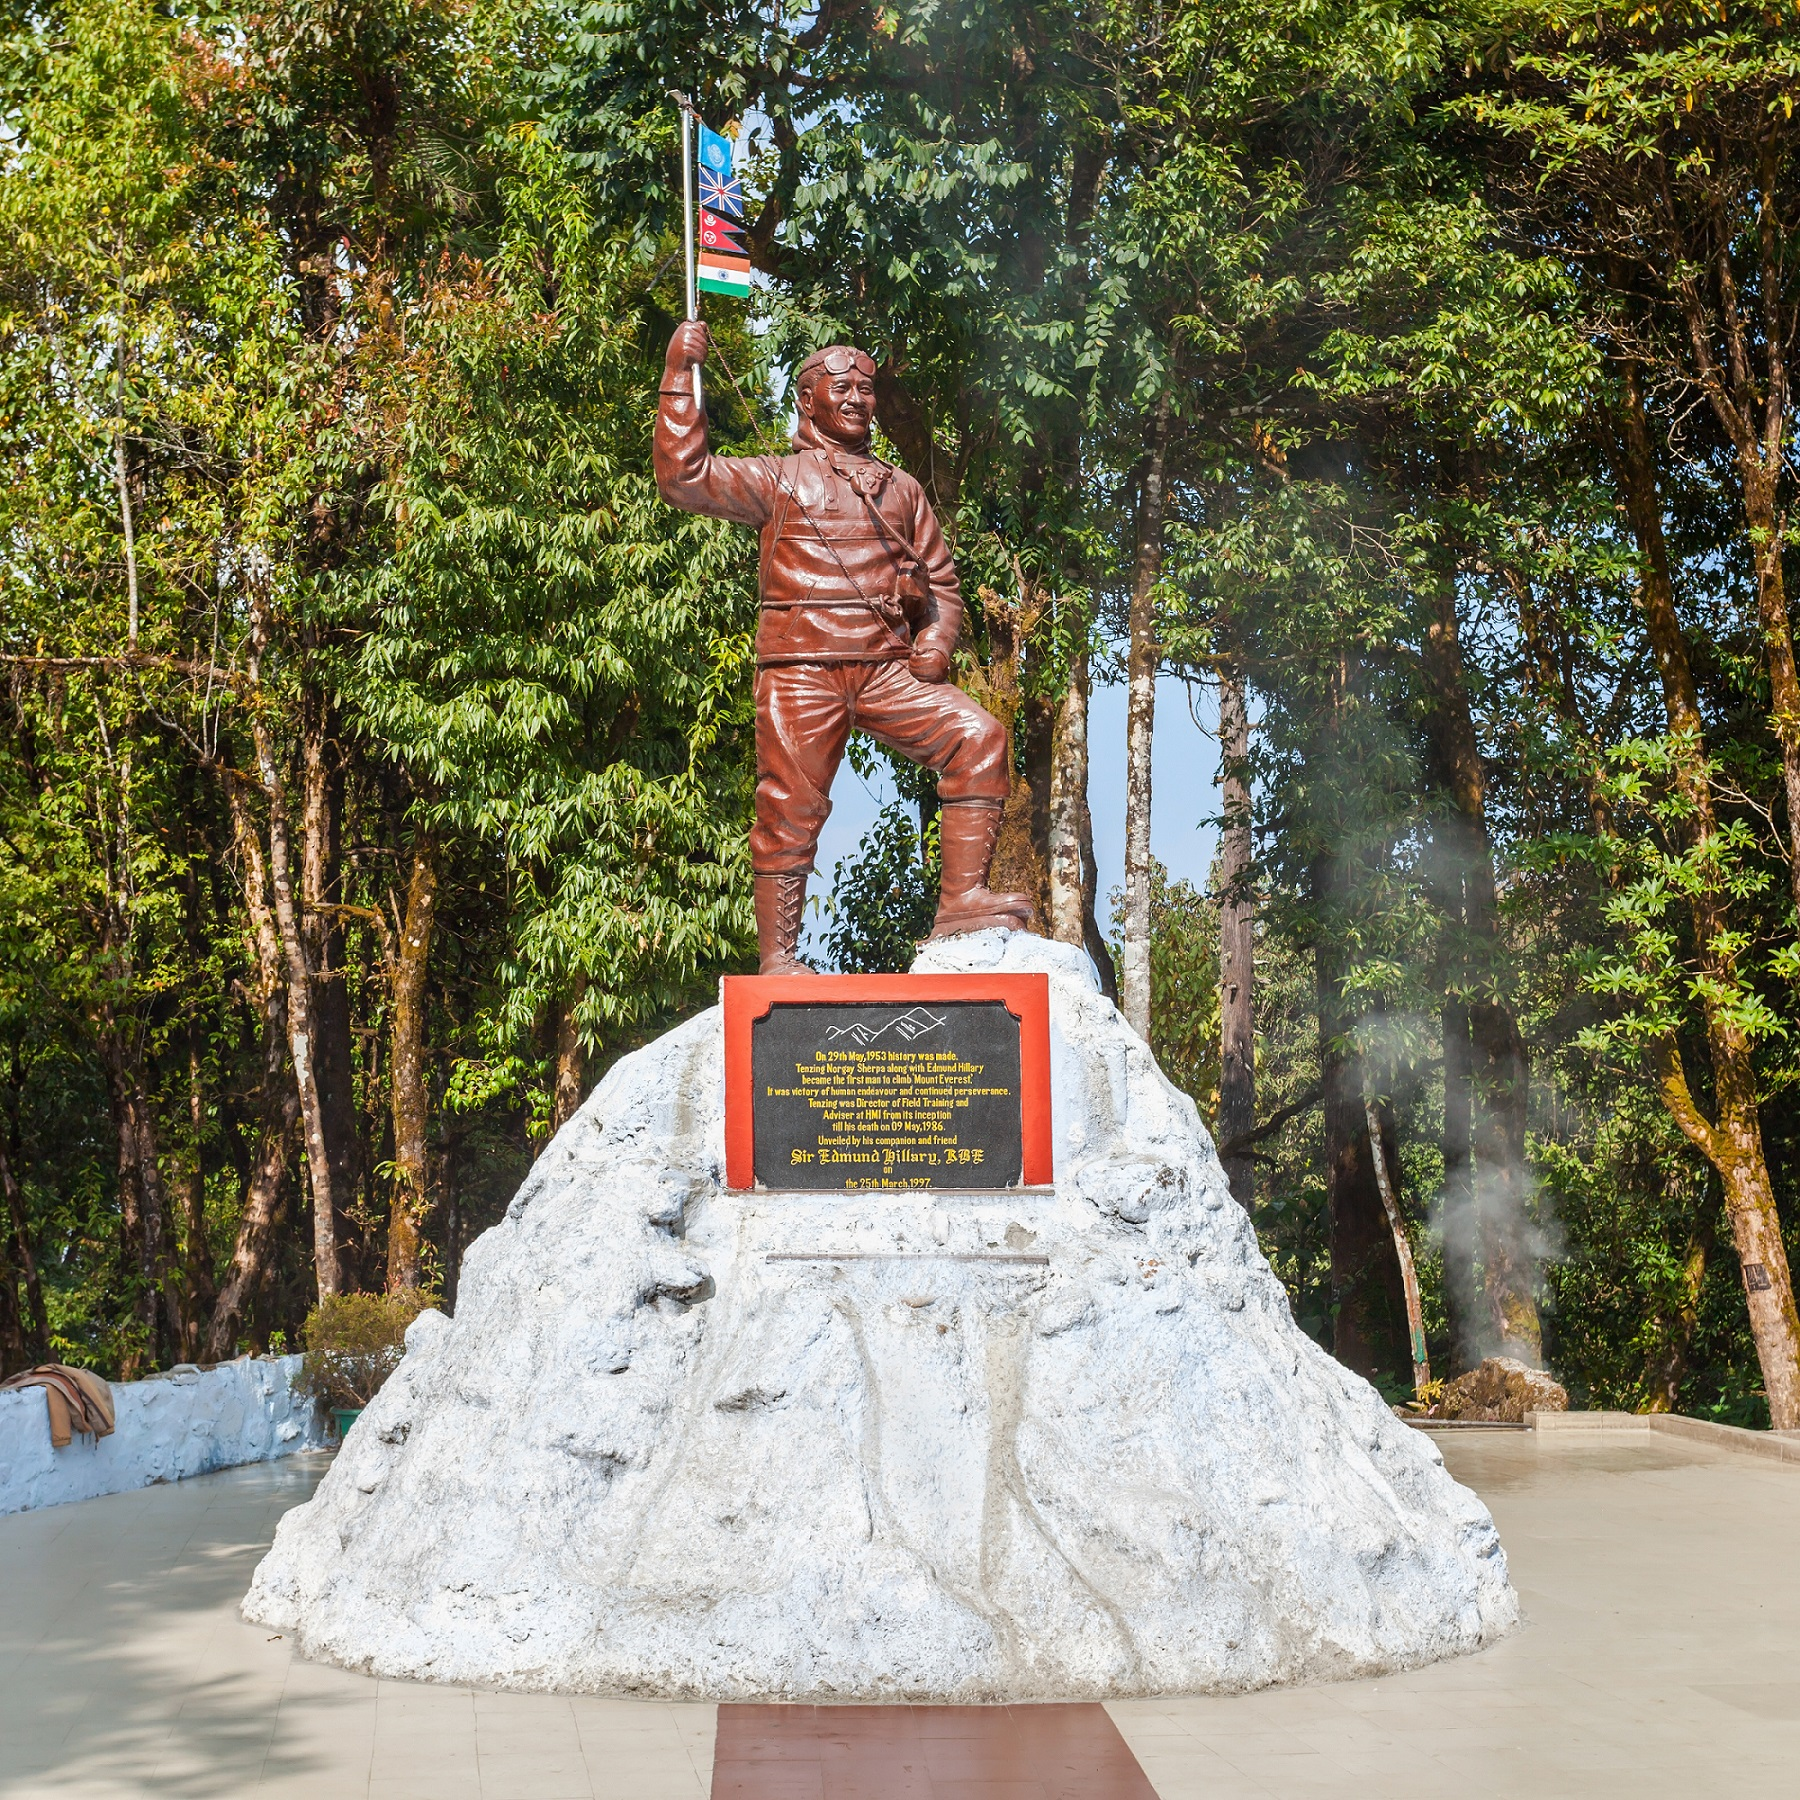 DARJEELING, INDIA - NOVEMBER 18, 2015 Tenzing Norgay memorial at the Himalayan Mountaineering Institute in Darjeeling, India.